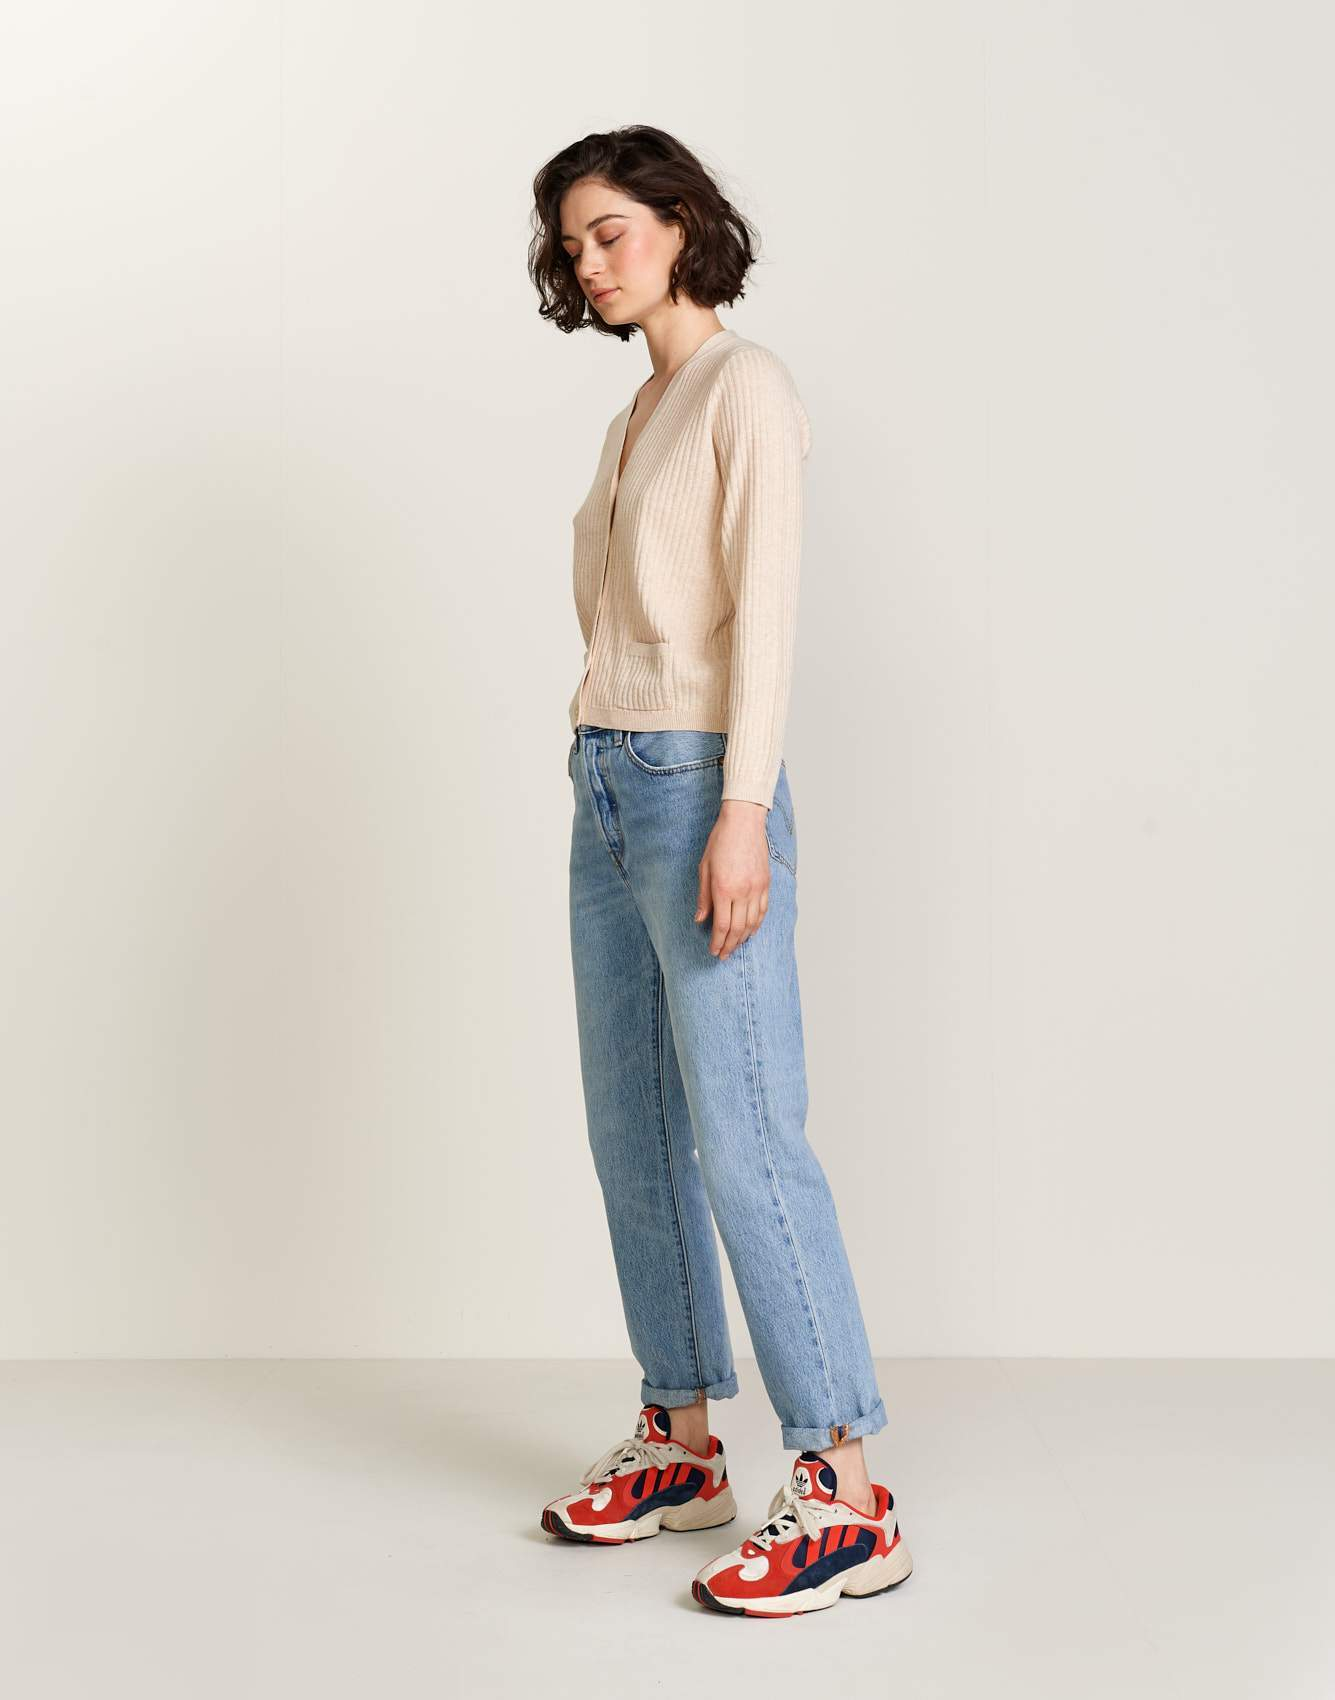 Bellerose white striped cotton and wool knit top for women